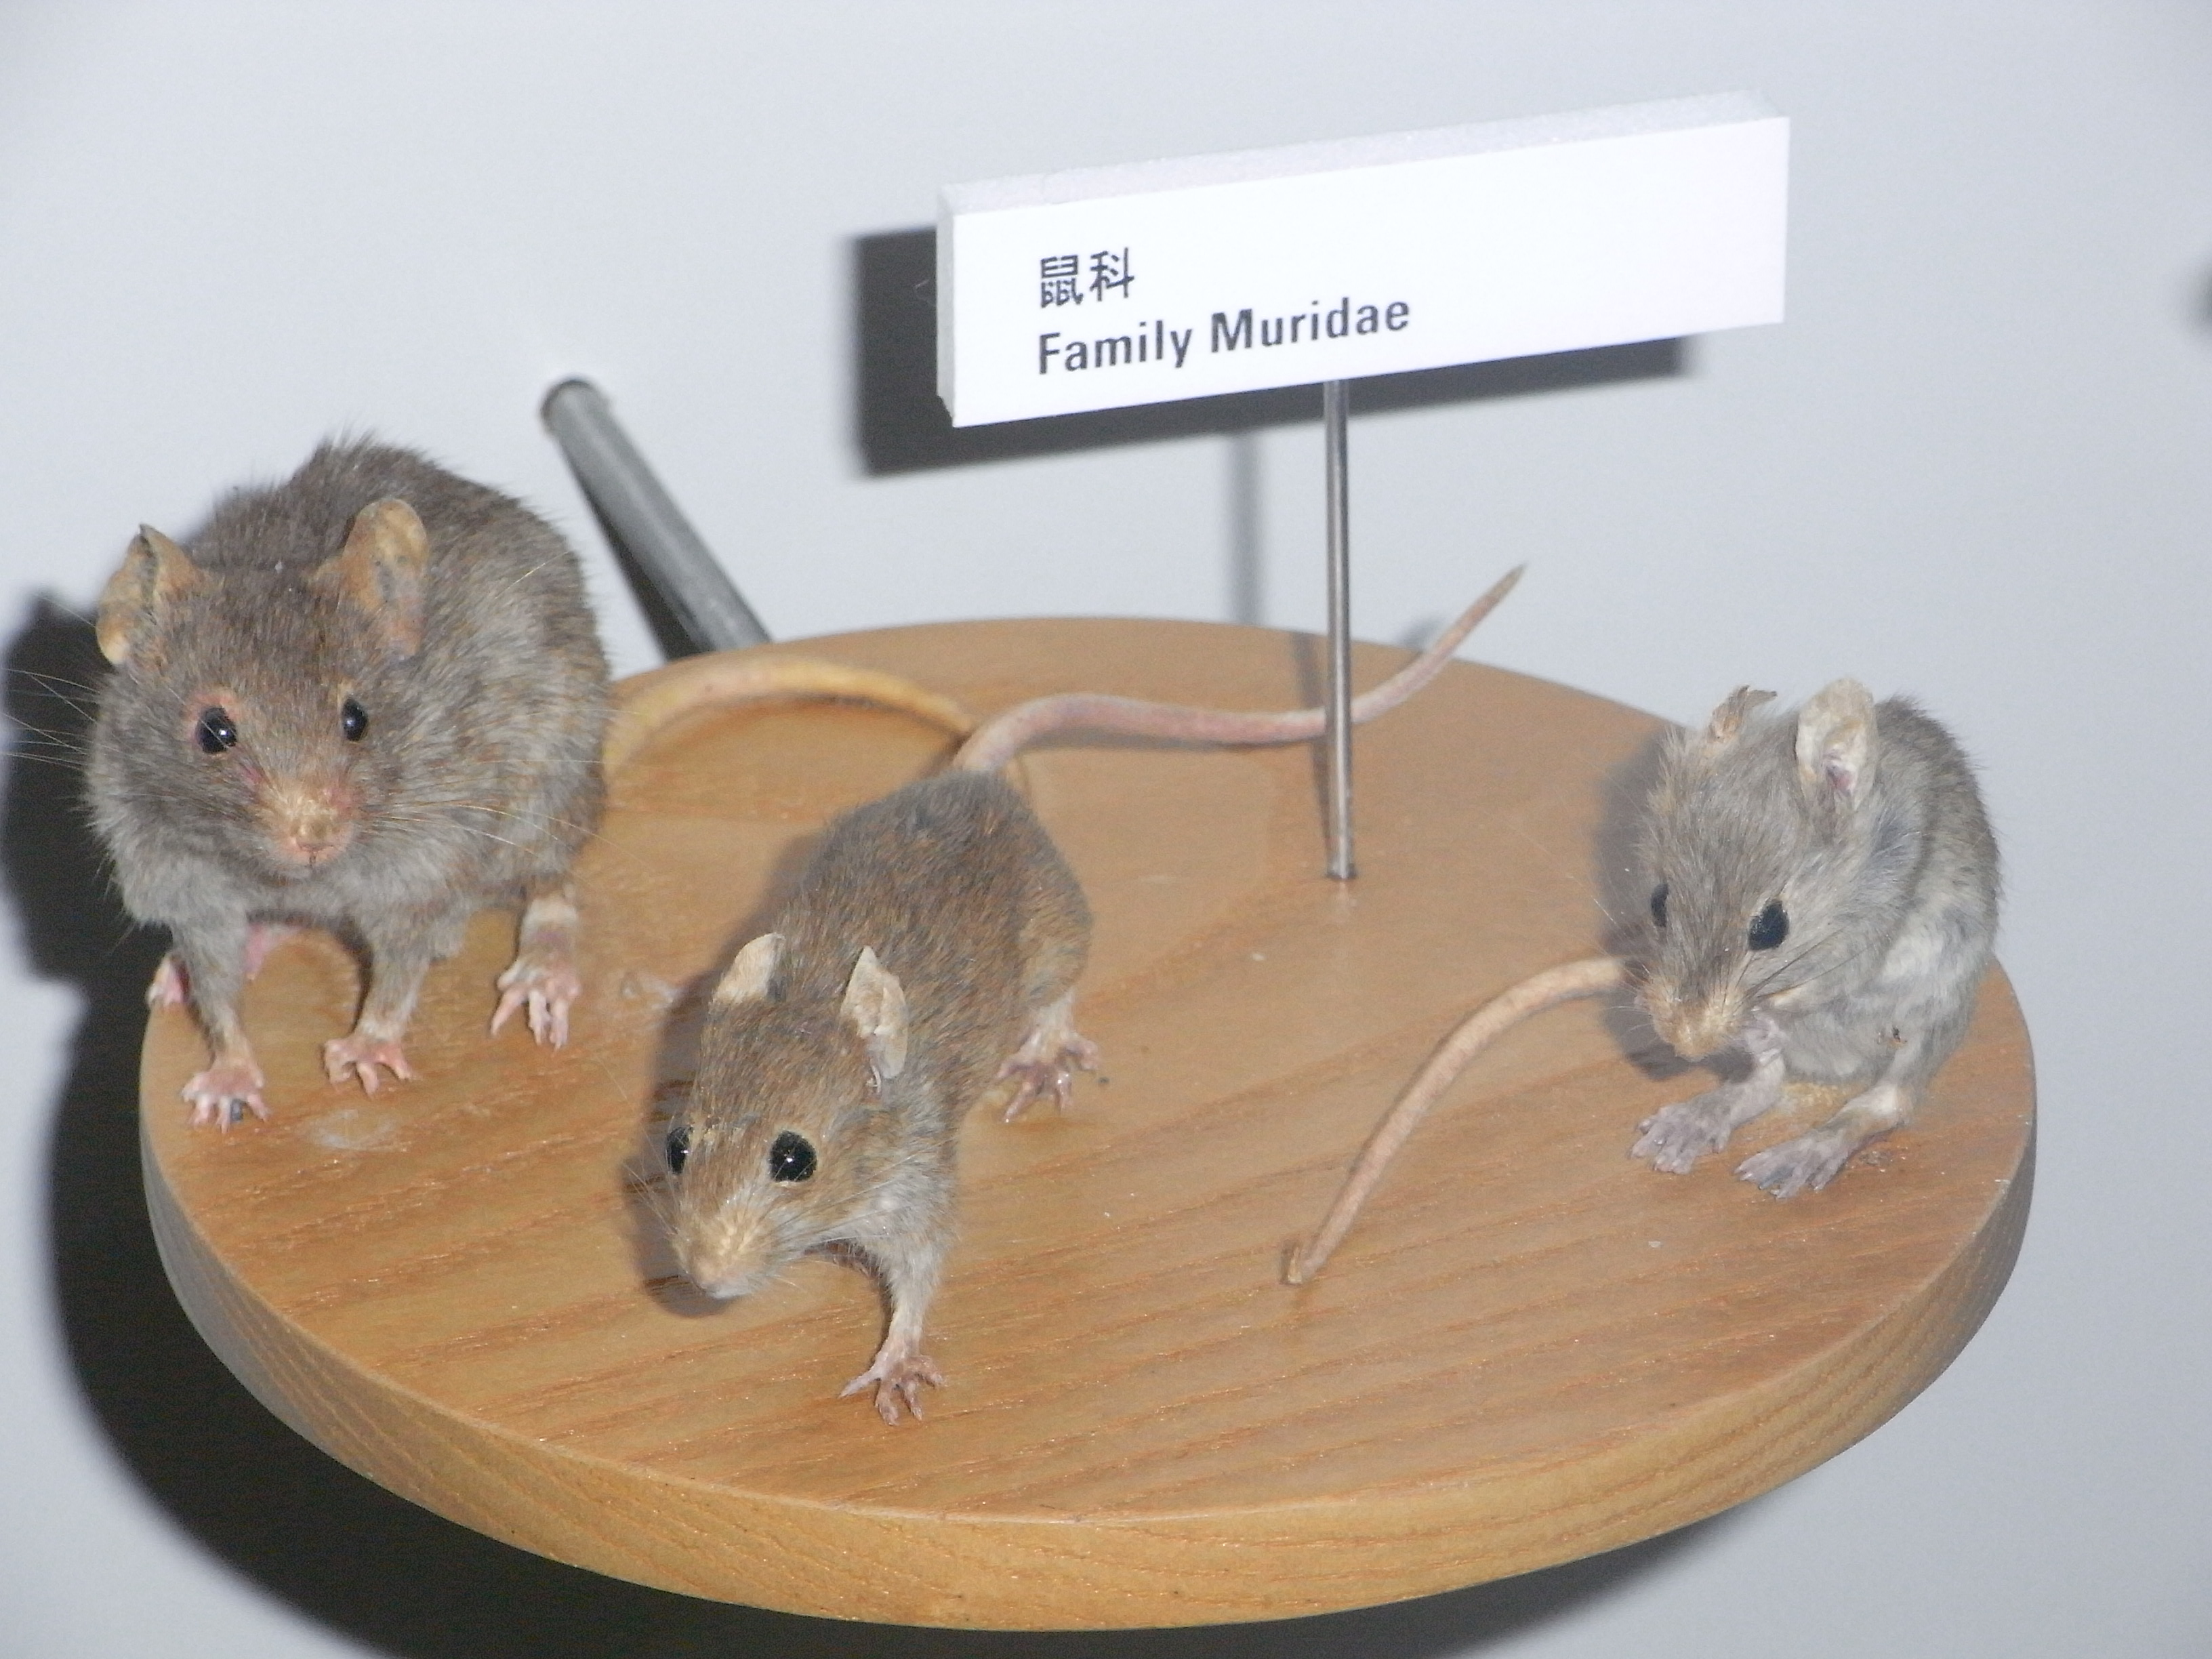 Old World Rats and Mice (Family Muridae)